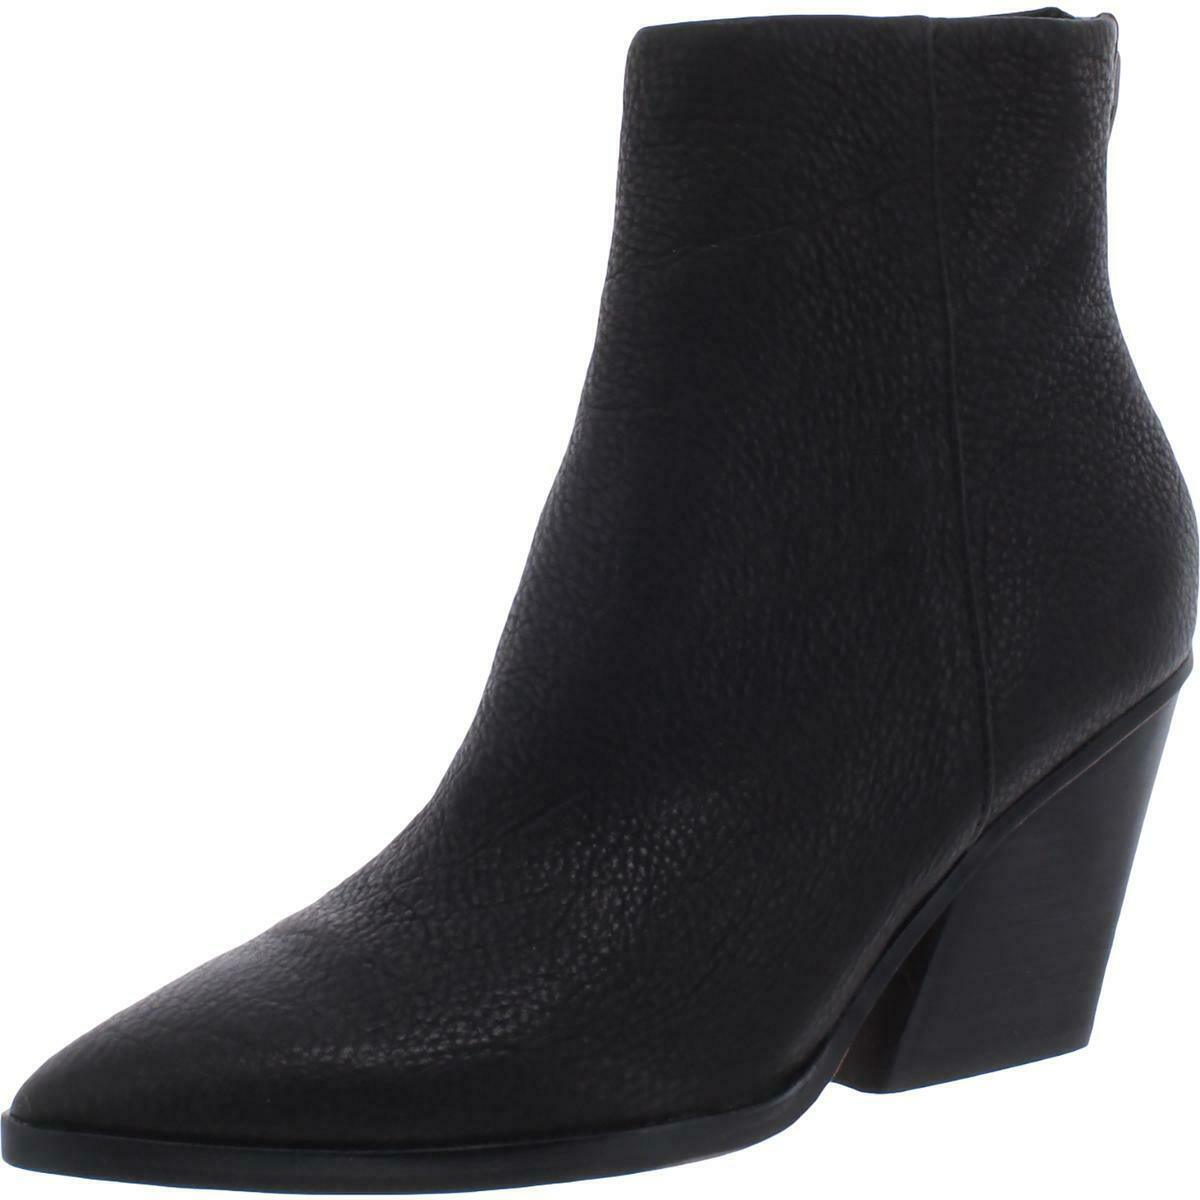 Dolce Vita Womens Issa Leather Heels Ankle Boots Shoes BHFO 0087